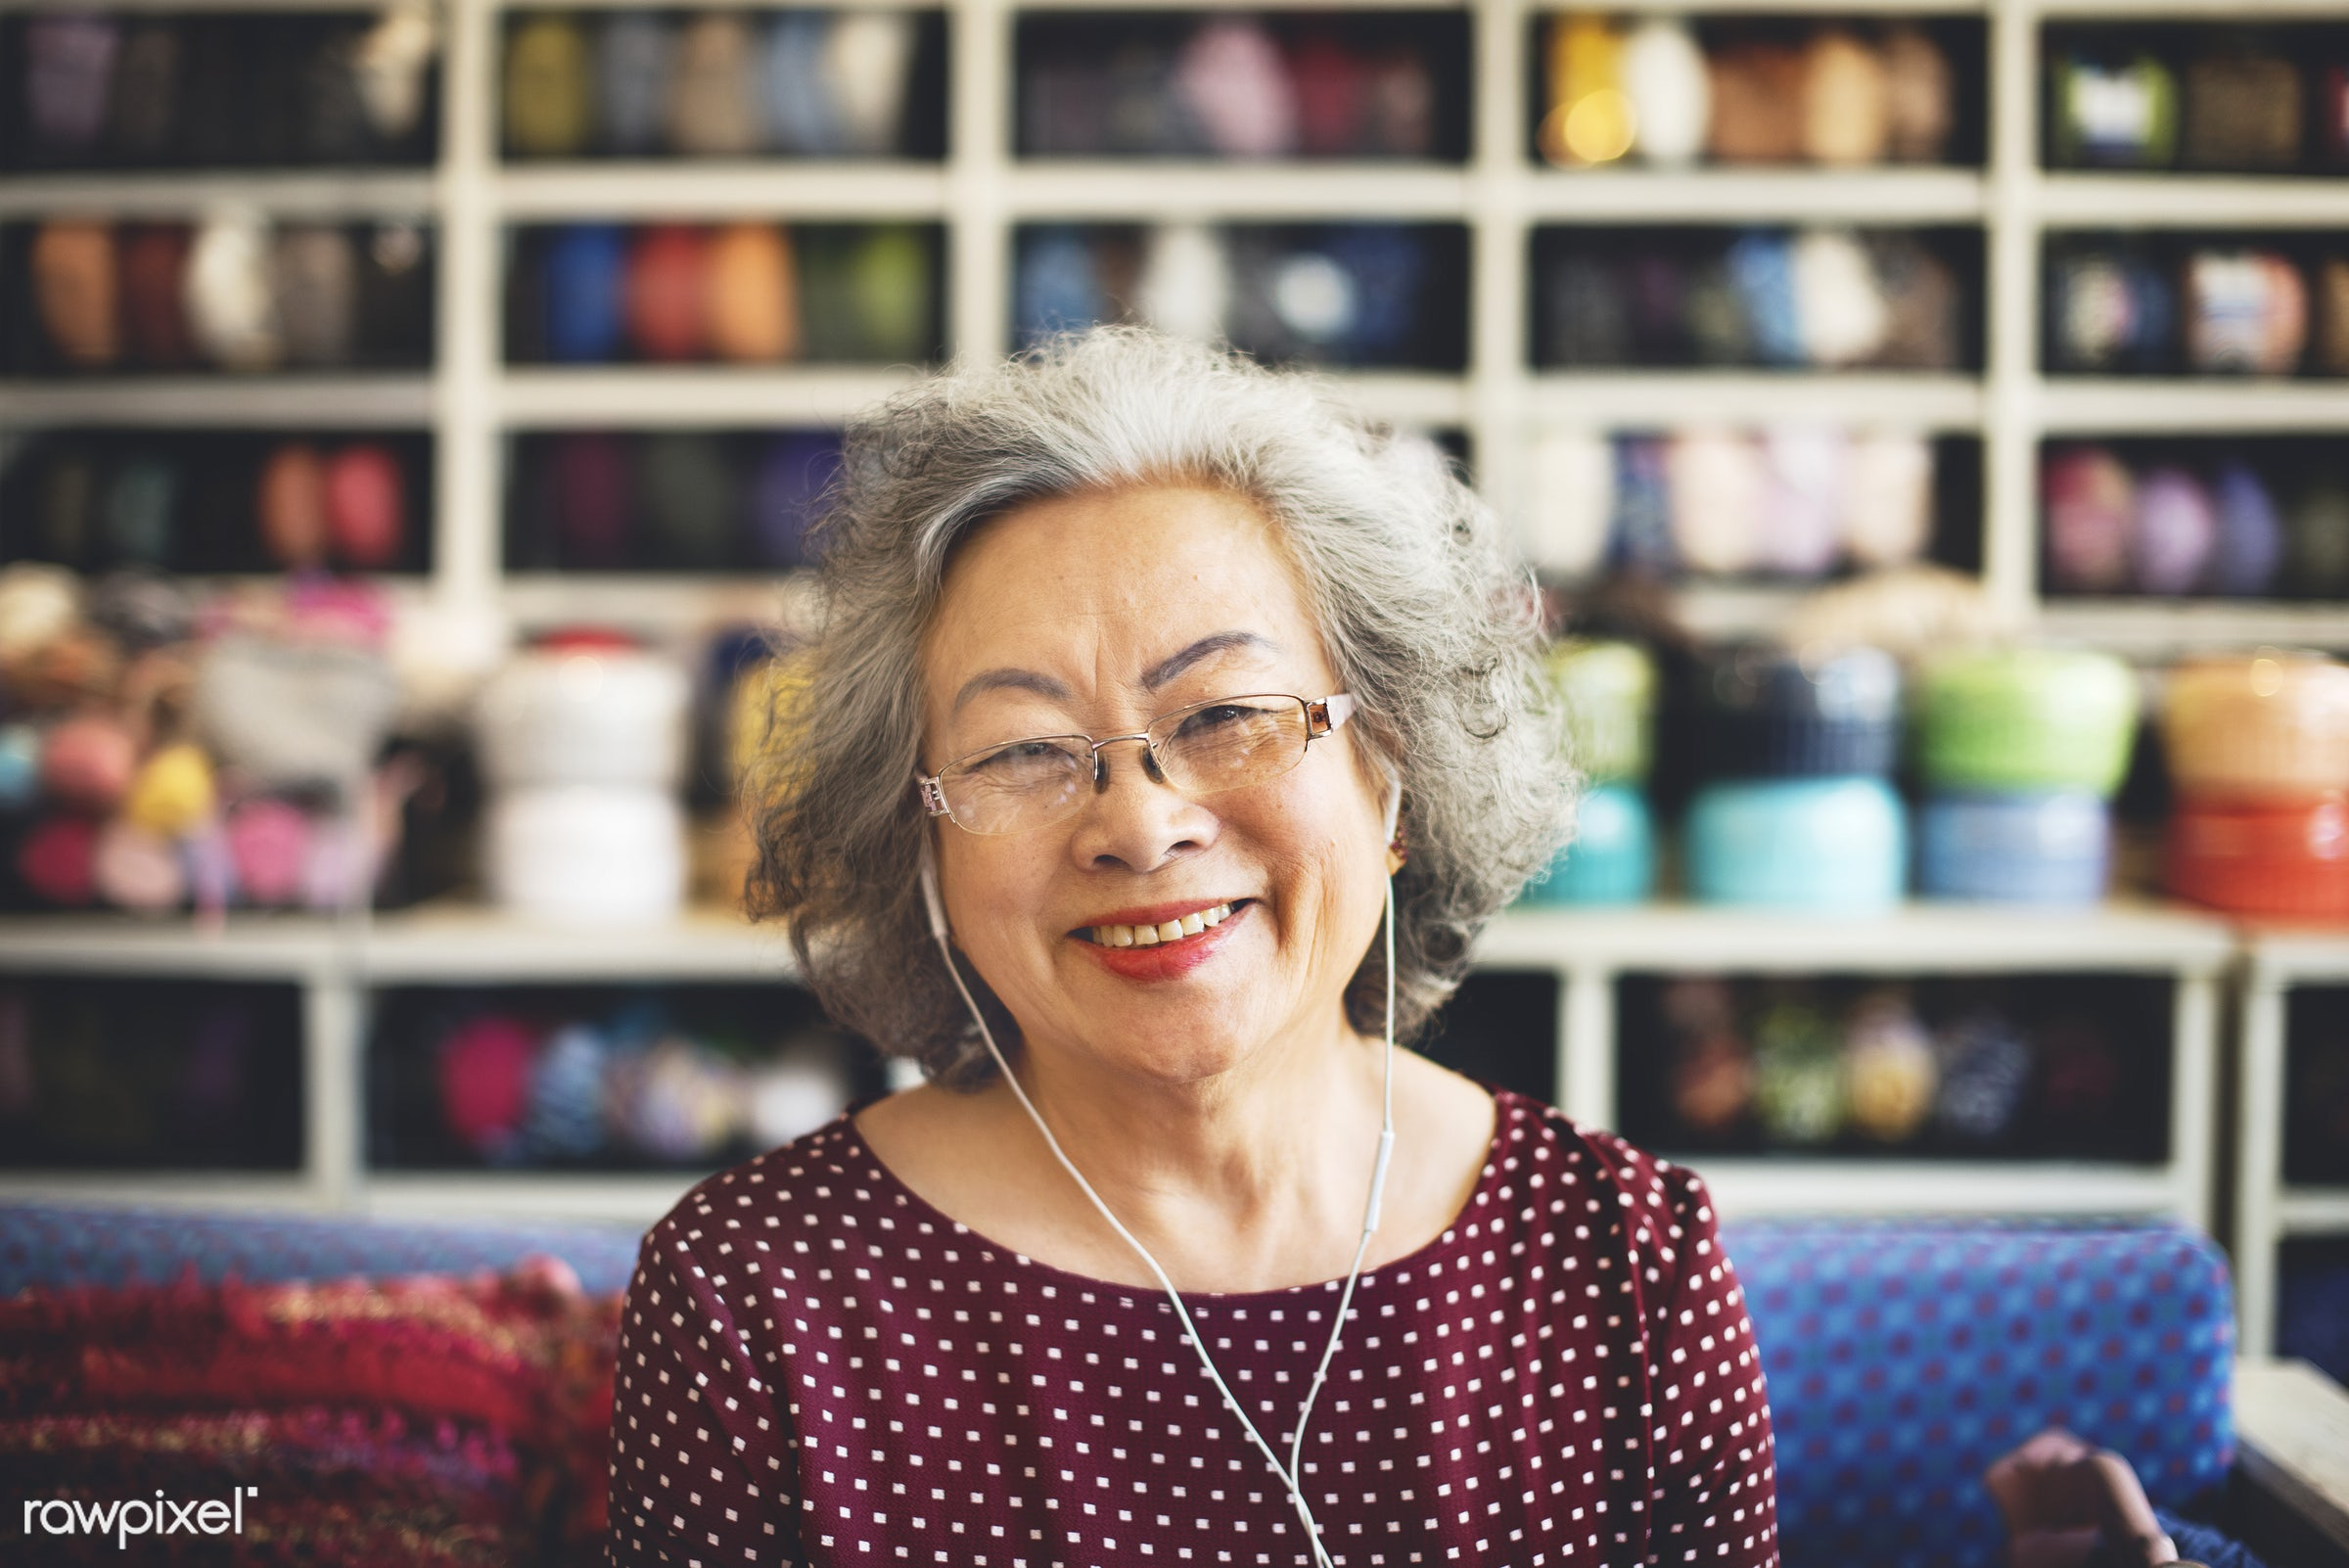 Life style of a senior Asian woman - elderly, senior, healthy, elder, activity, adult, asian, cafe, casual, cheerful, close...